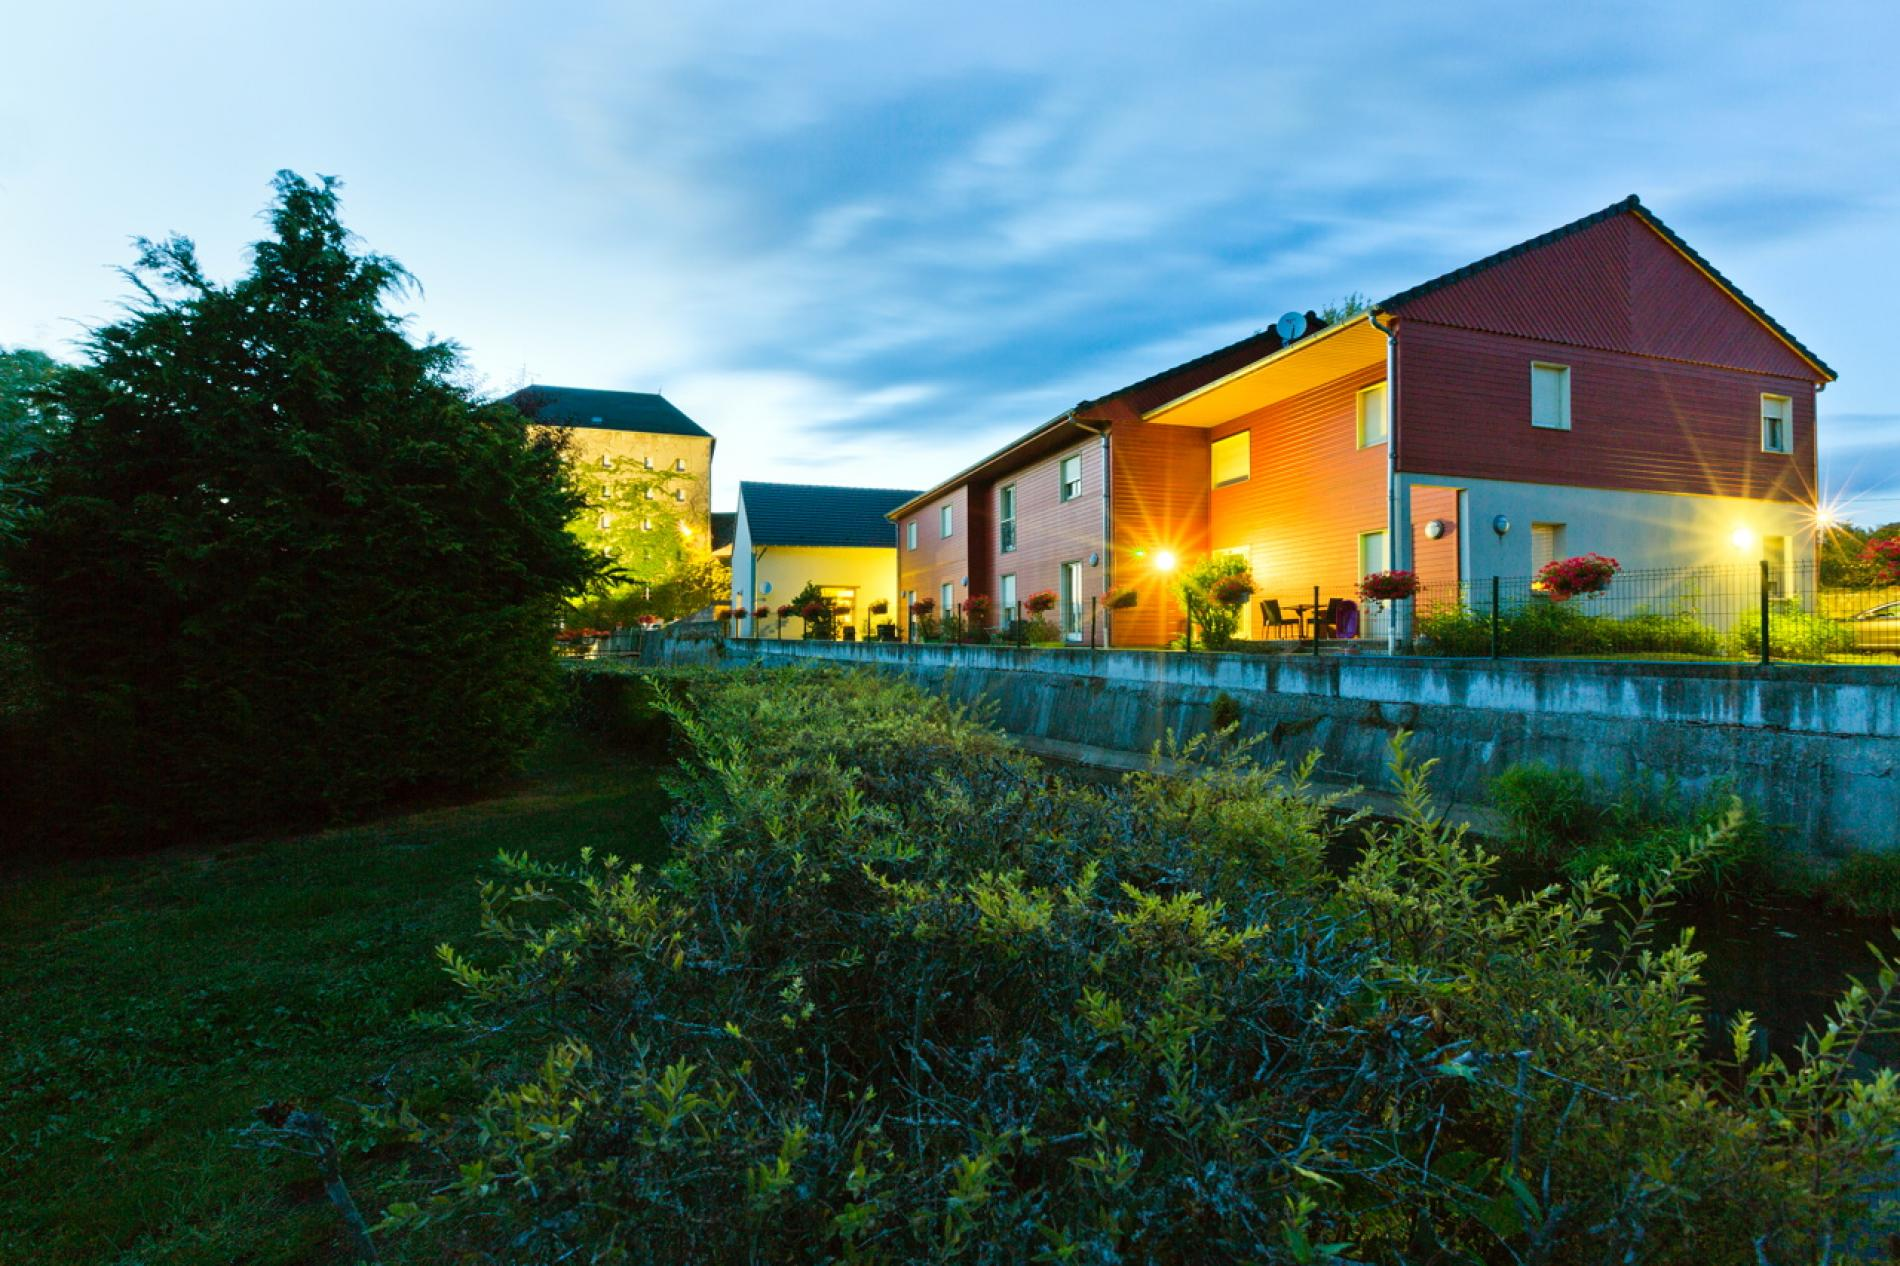 Logis hotel on the banks of the Besbre, Lapalisse, Auvergne.